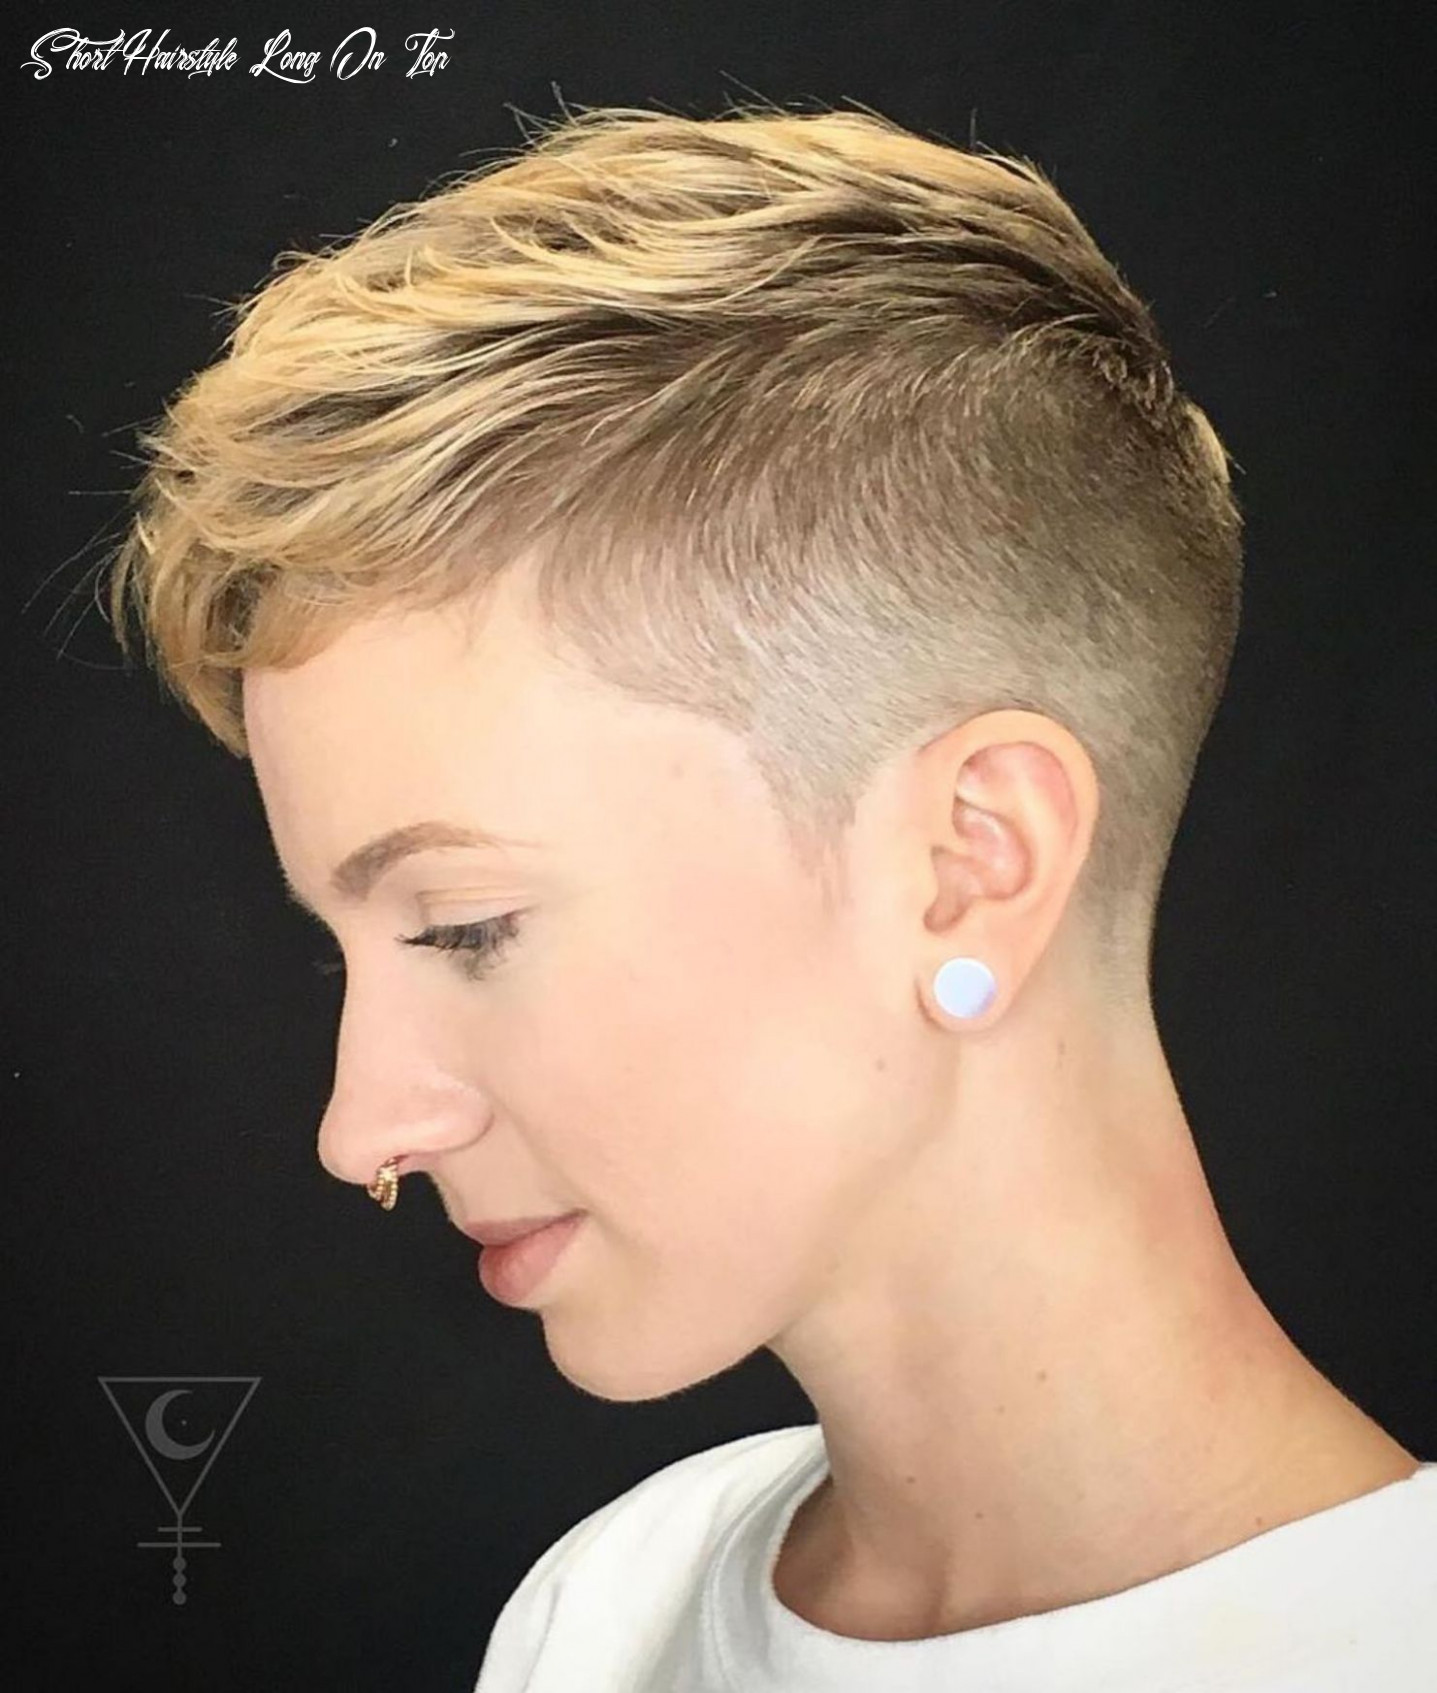 Pin on cool cuts short hairstyle long on top